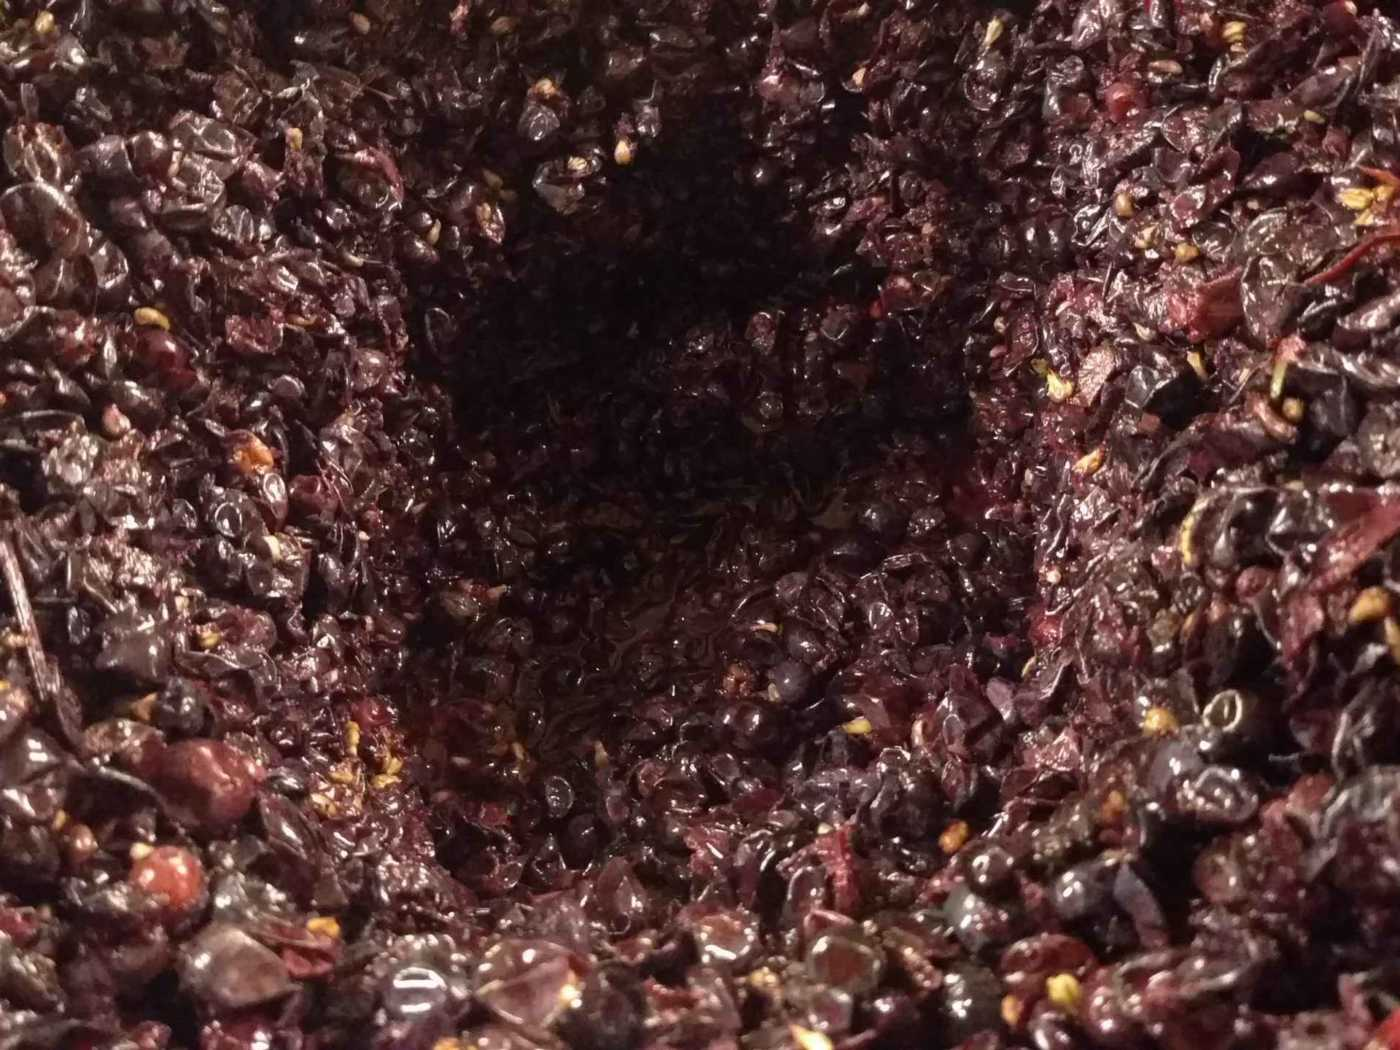 Grape funnel during fermentation punchdowns